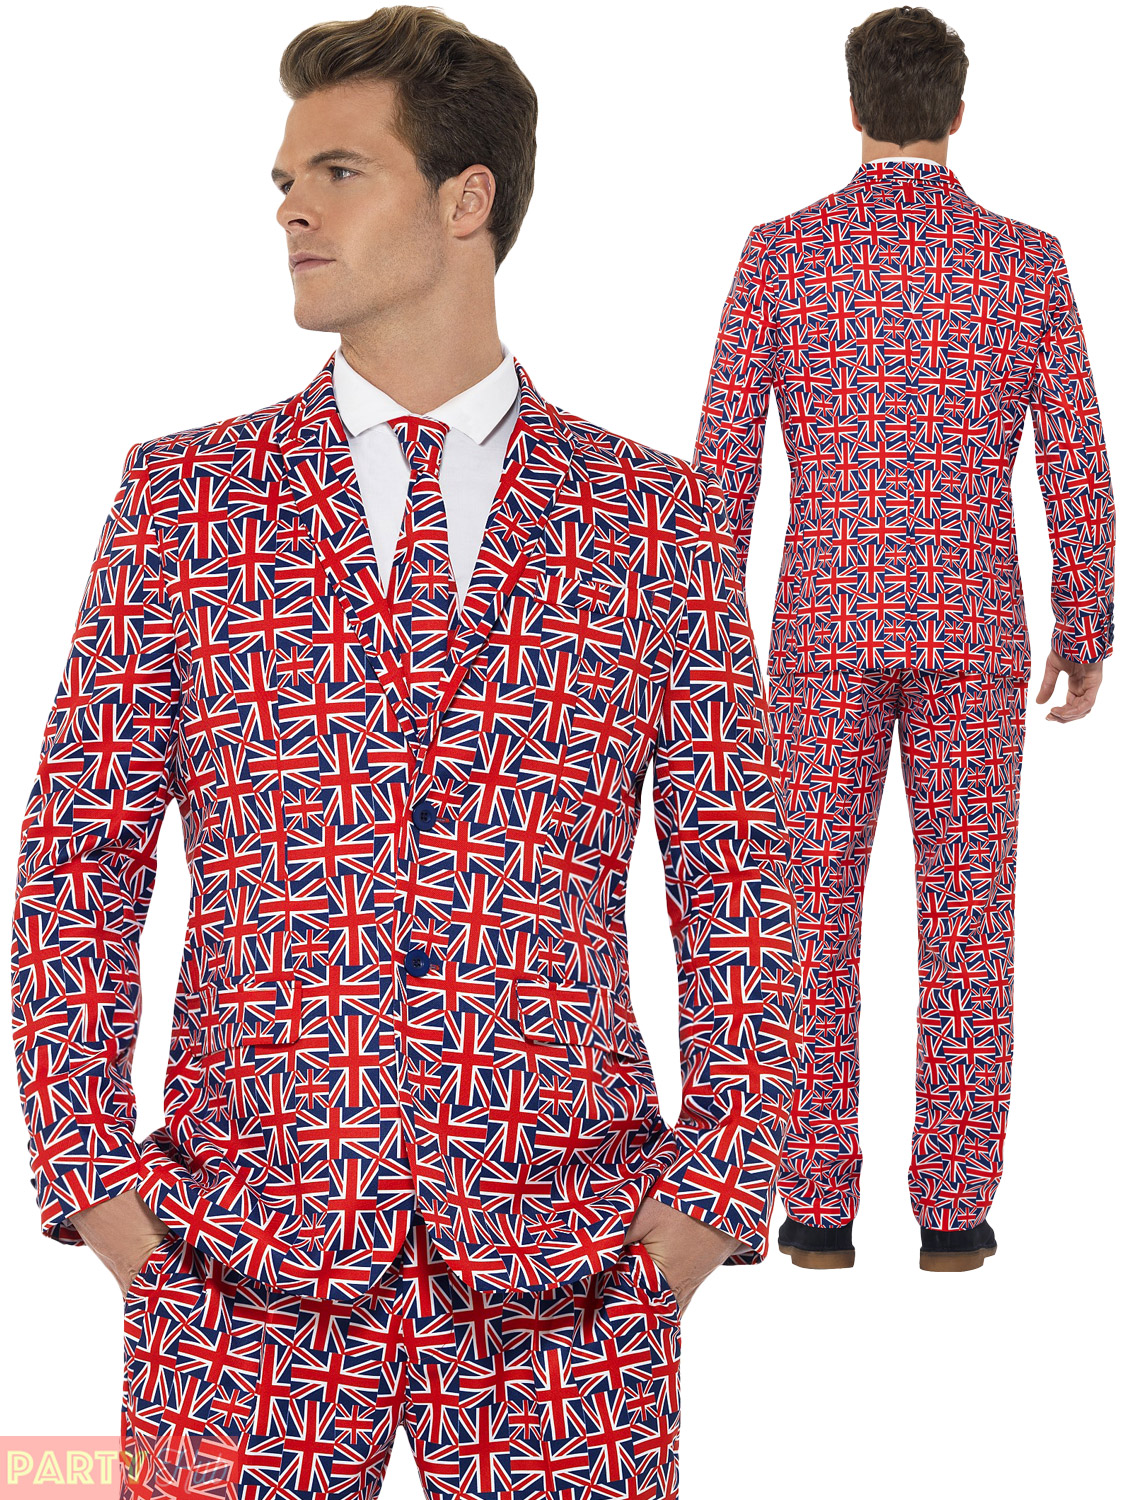 Details about Mens Stand Out Suit Stag Do Fancy Dress Party Outfit Funny  Comedy Costume Adult